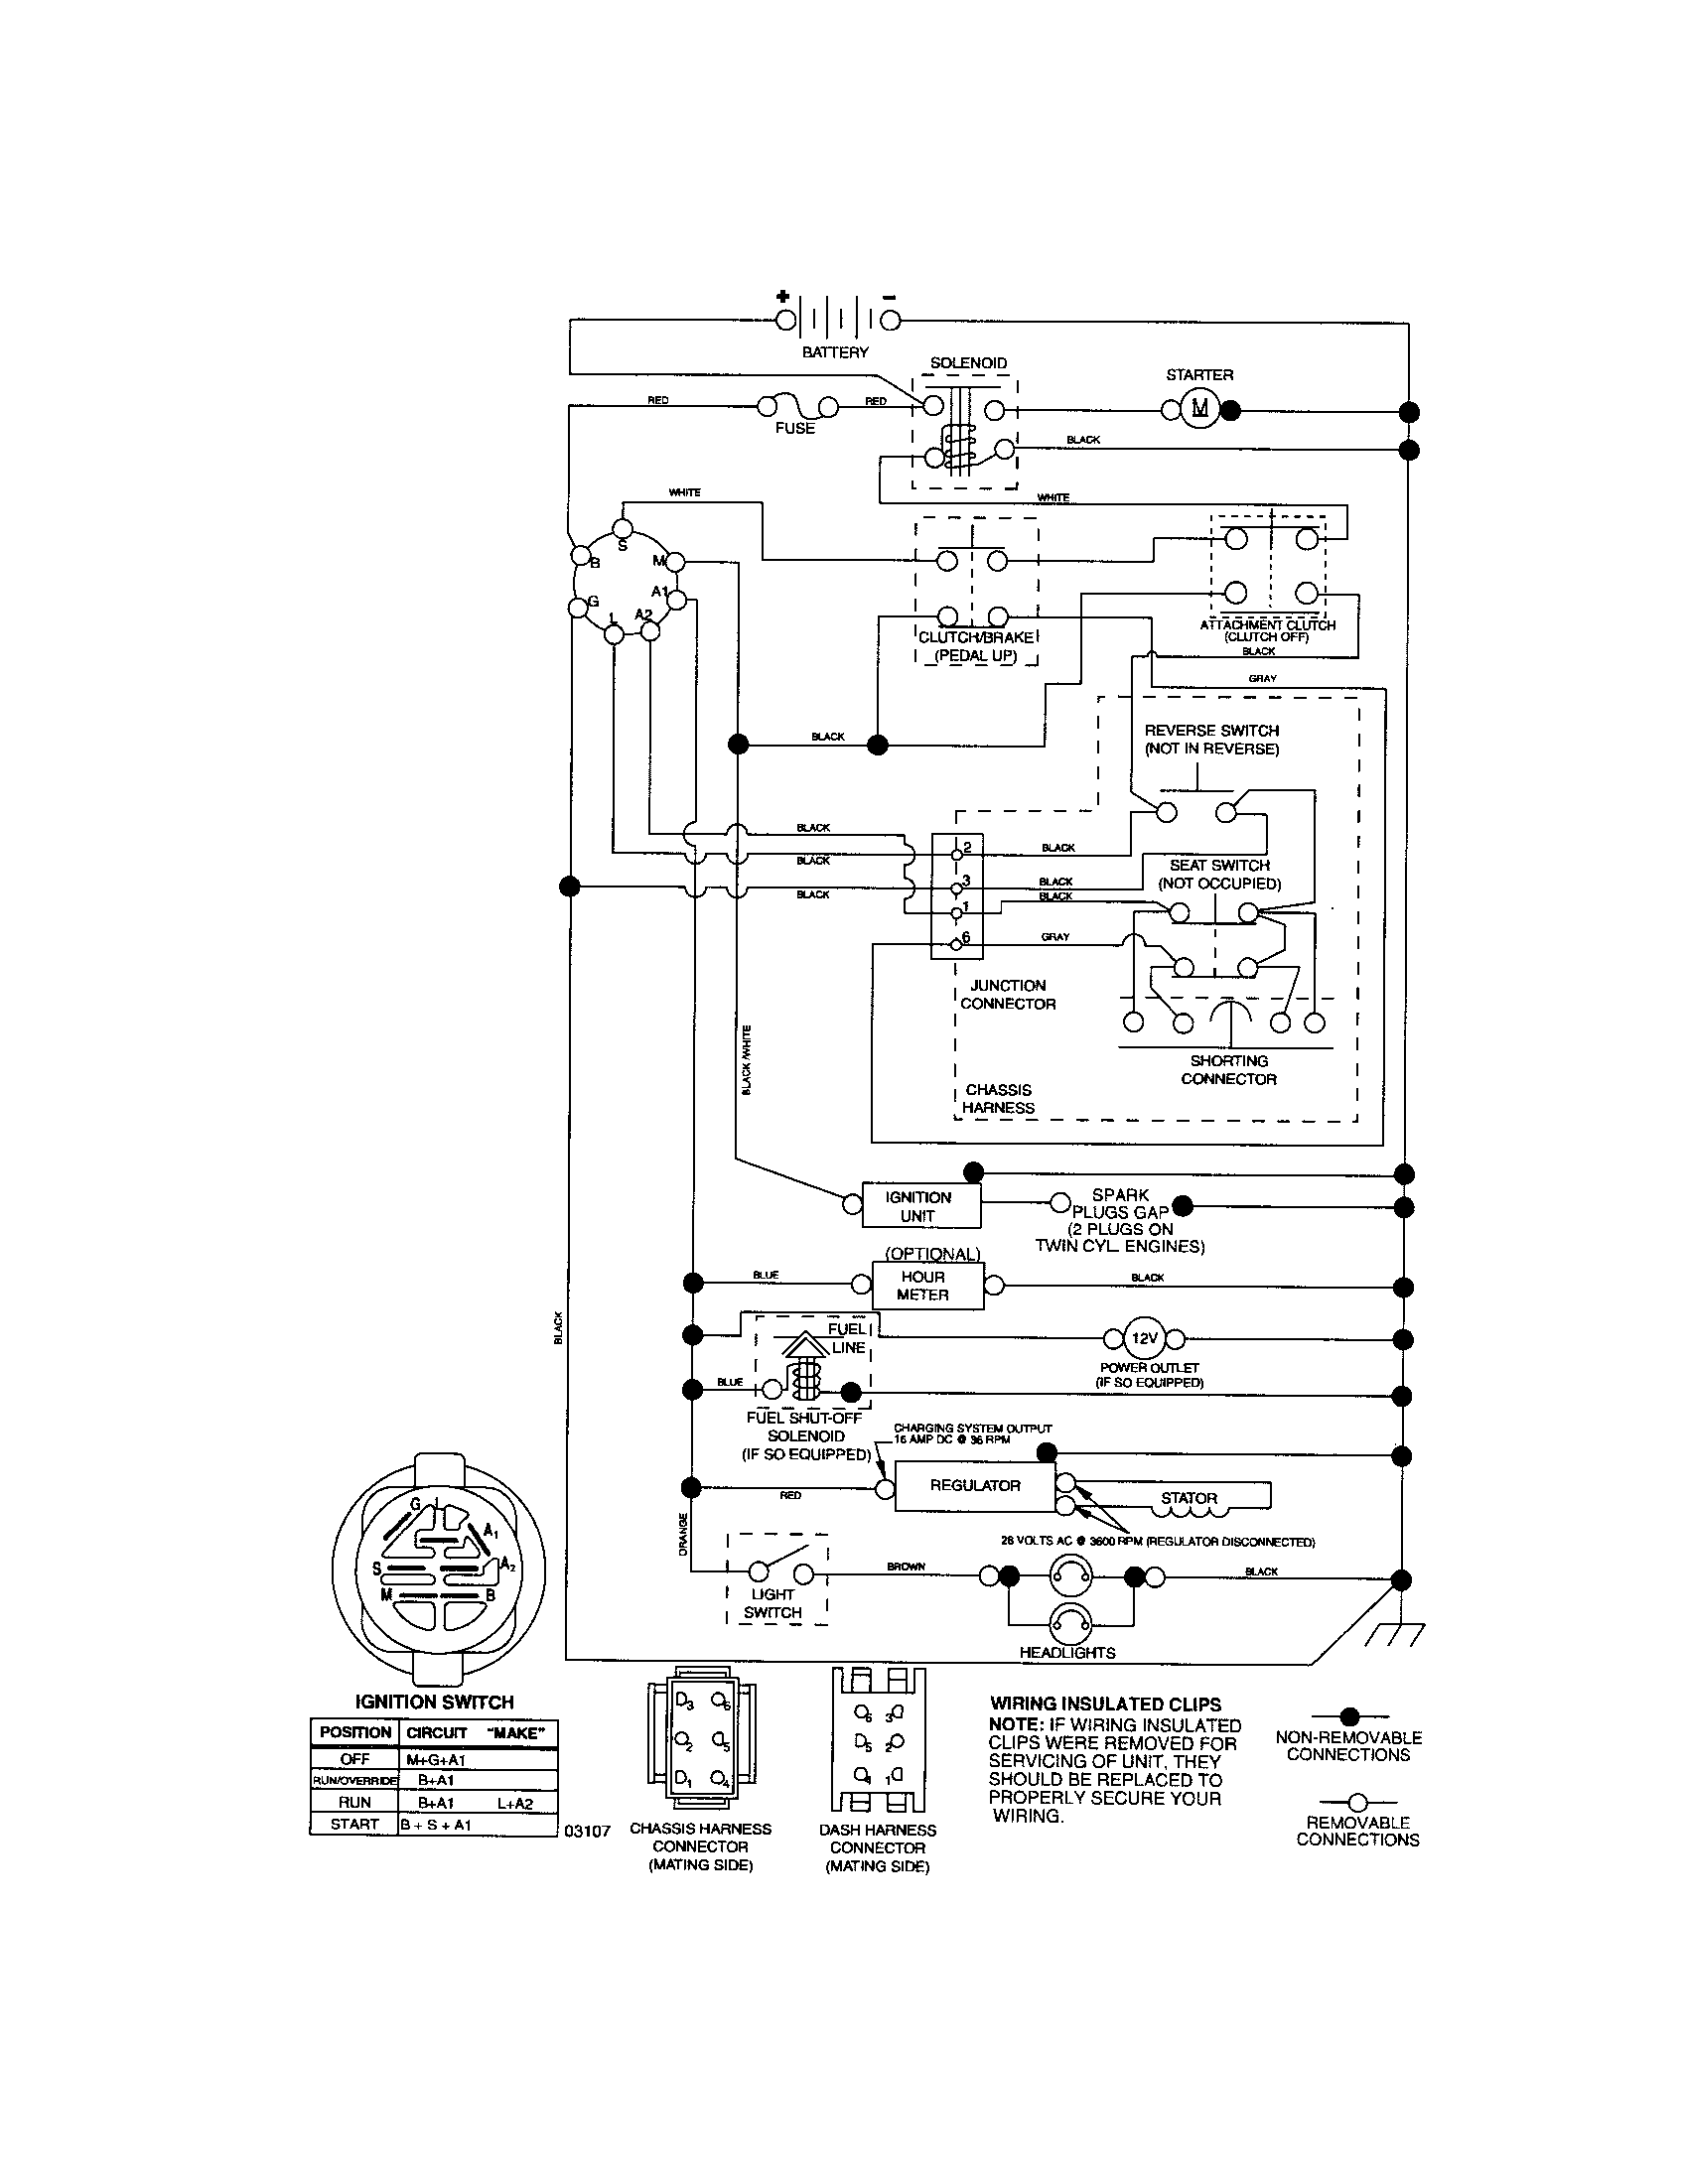 walker mower wiring schematics 119be gilson lawn tractor wiring diagram wiring resources  gilson lawn tractor wiring diagram